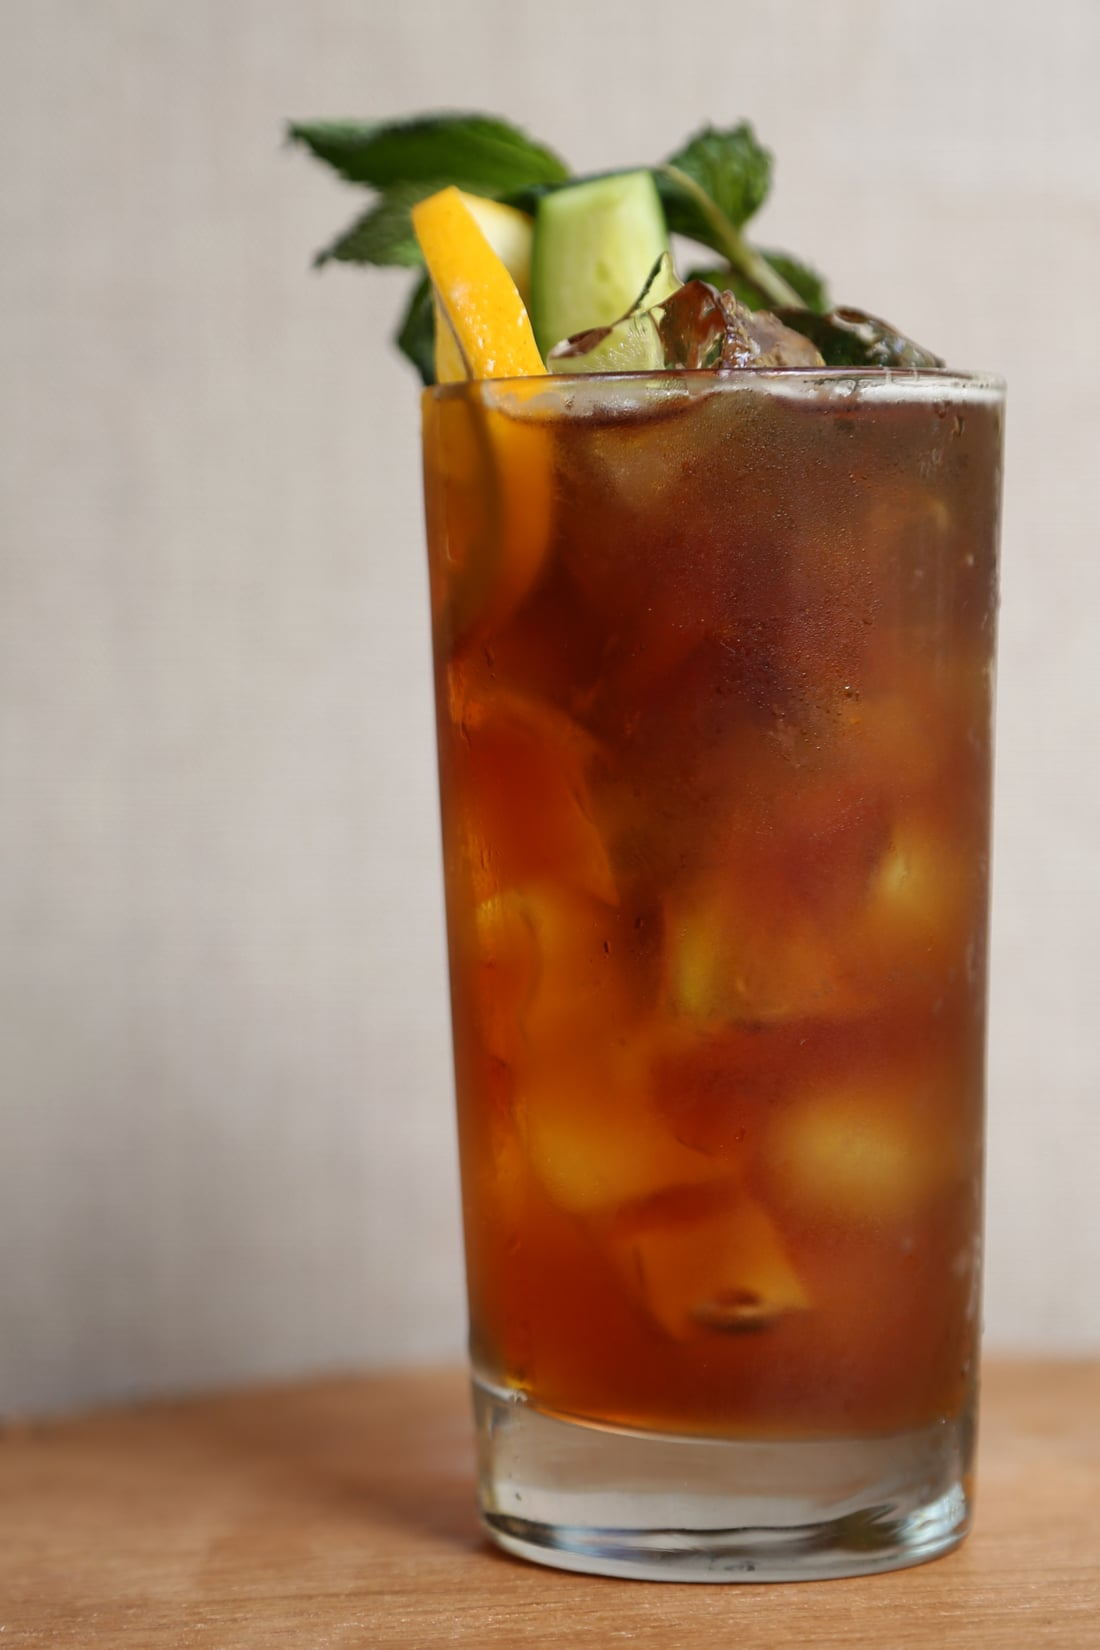 Pimm's Cup